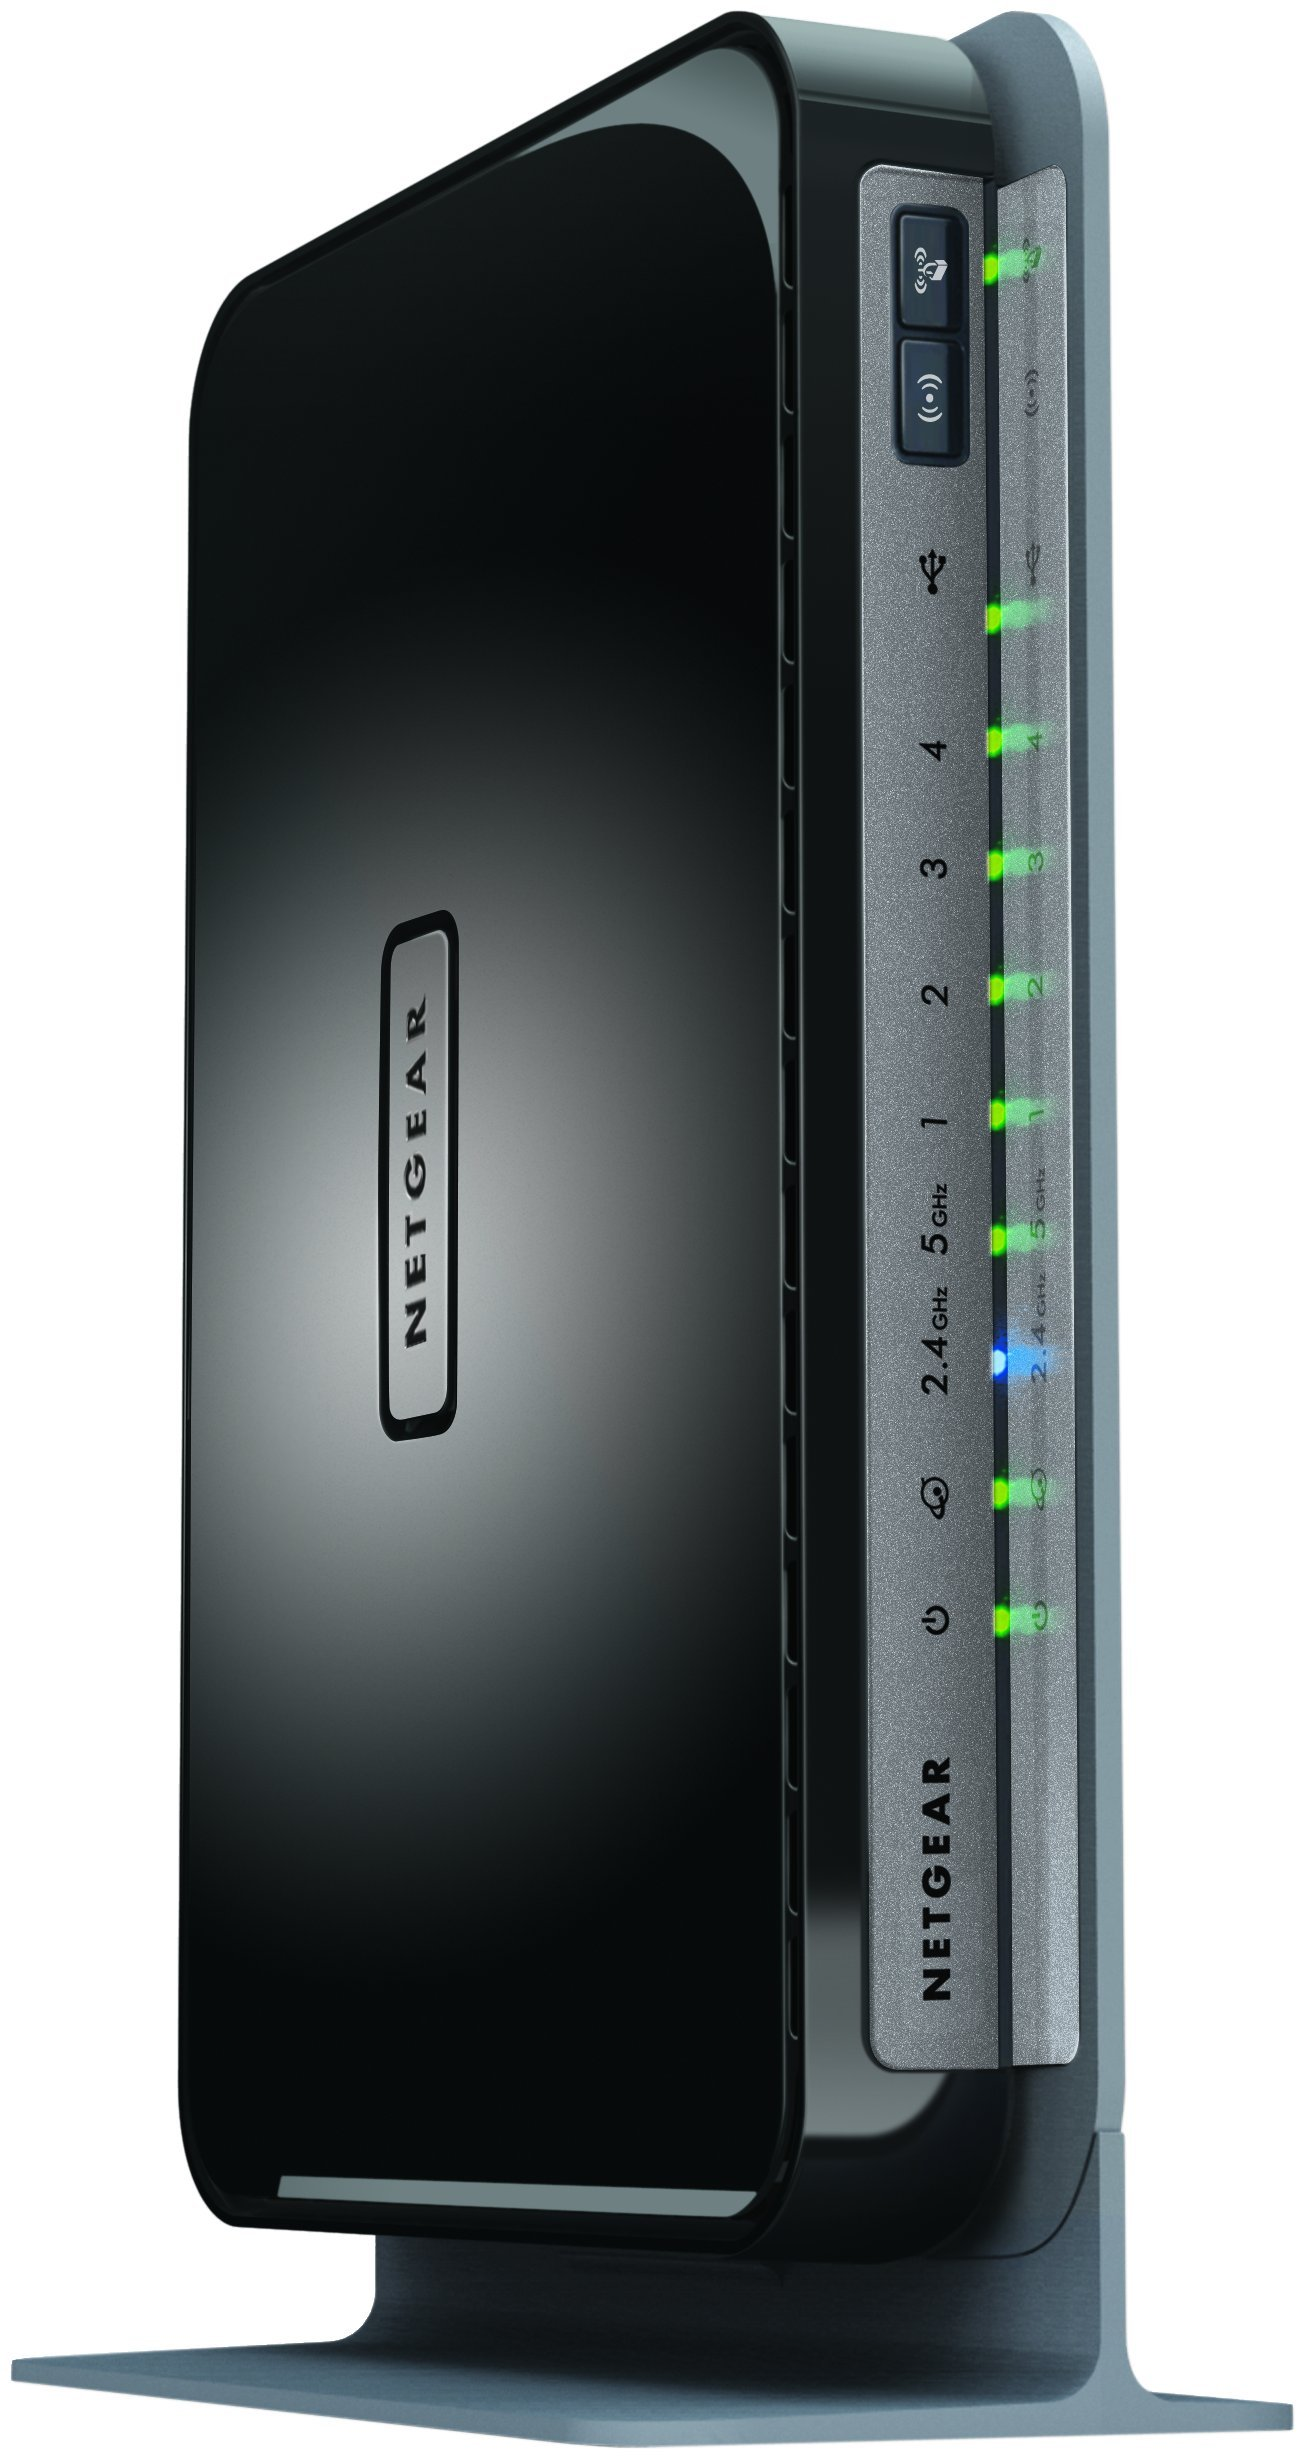 NETGEAR N750 Dual Band 4 Port Wi-Fi Gigabit Router (WNDR4300) by NETGEAR